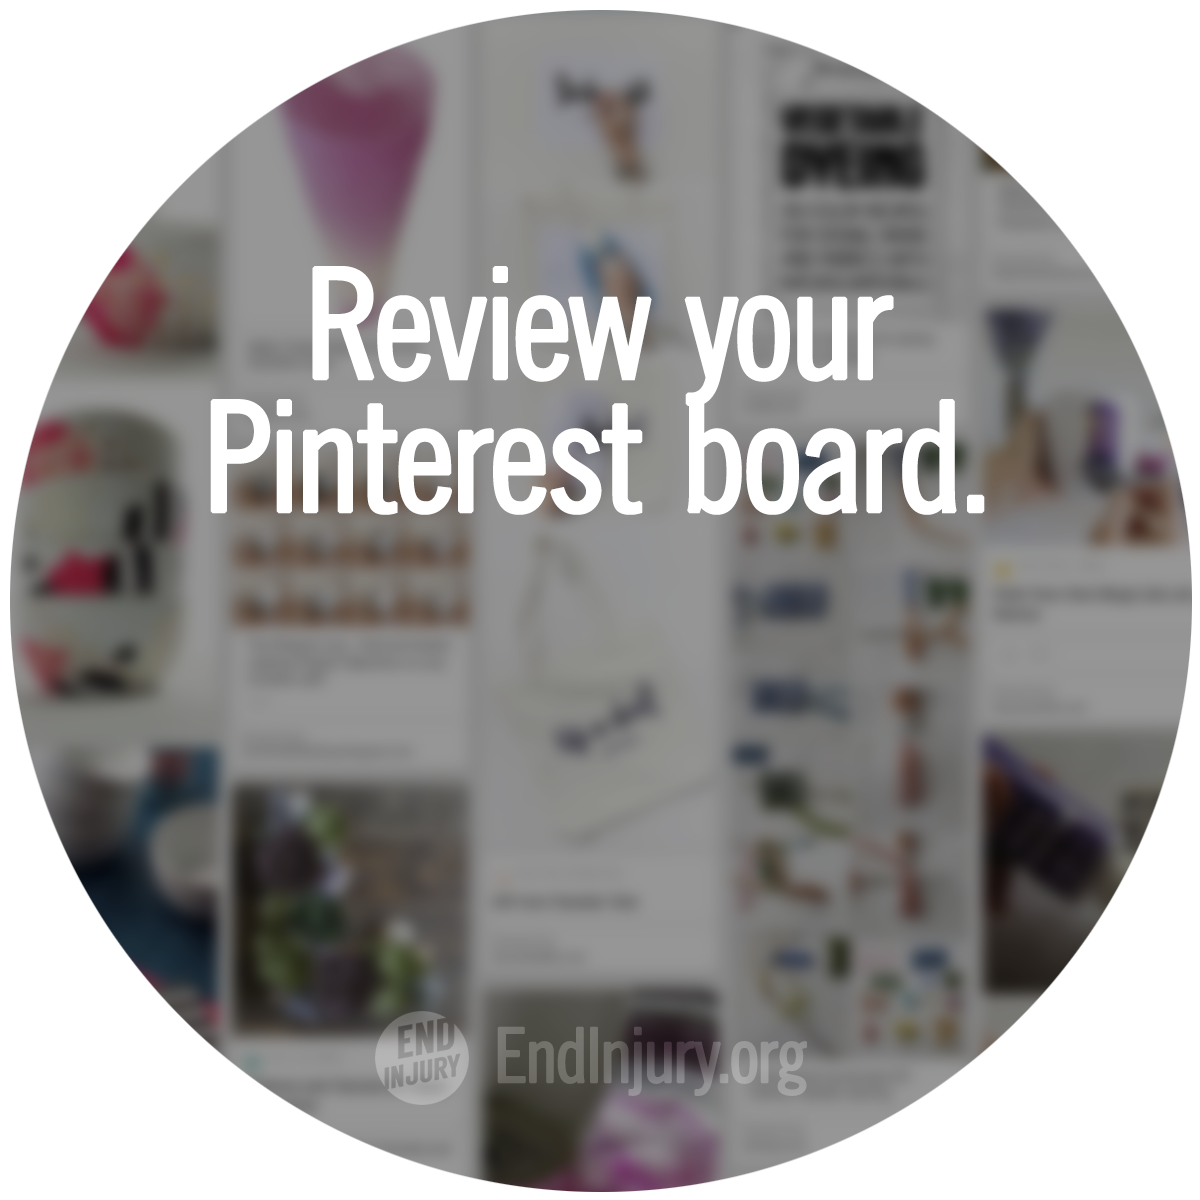 review-pinterest-action-photo.png